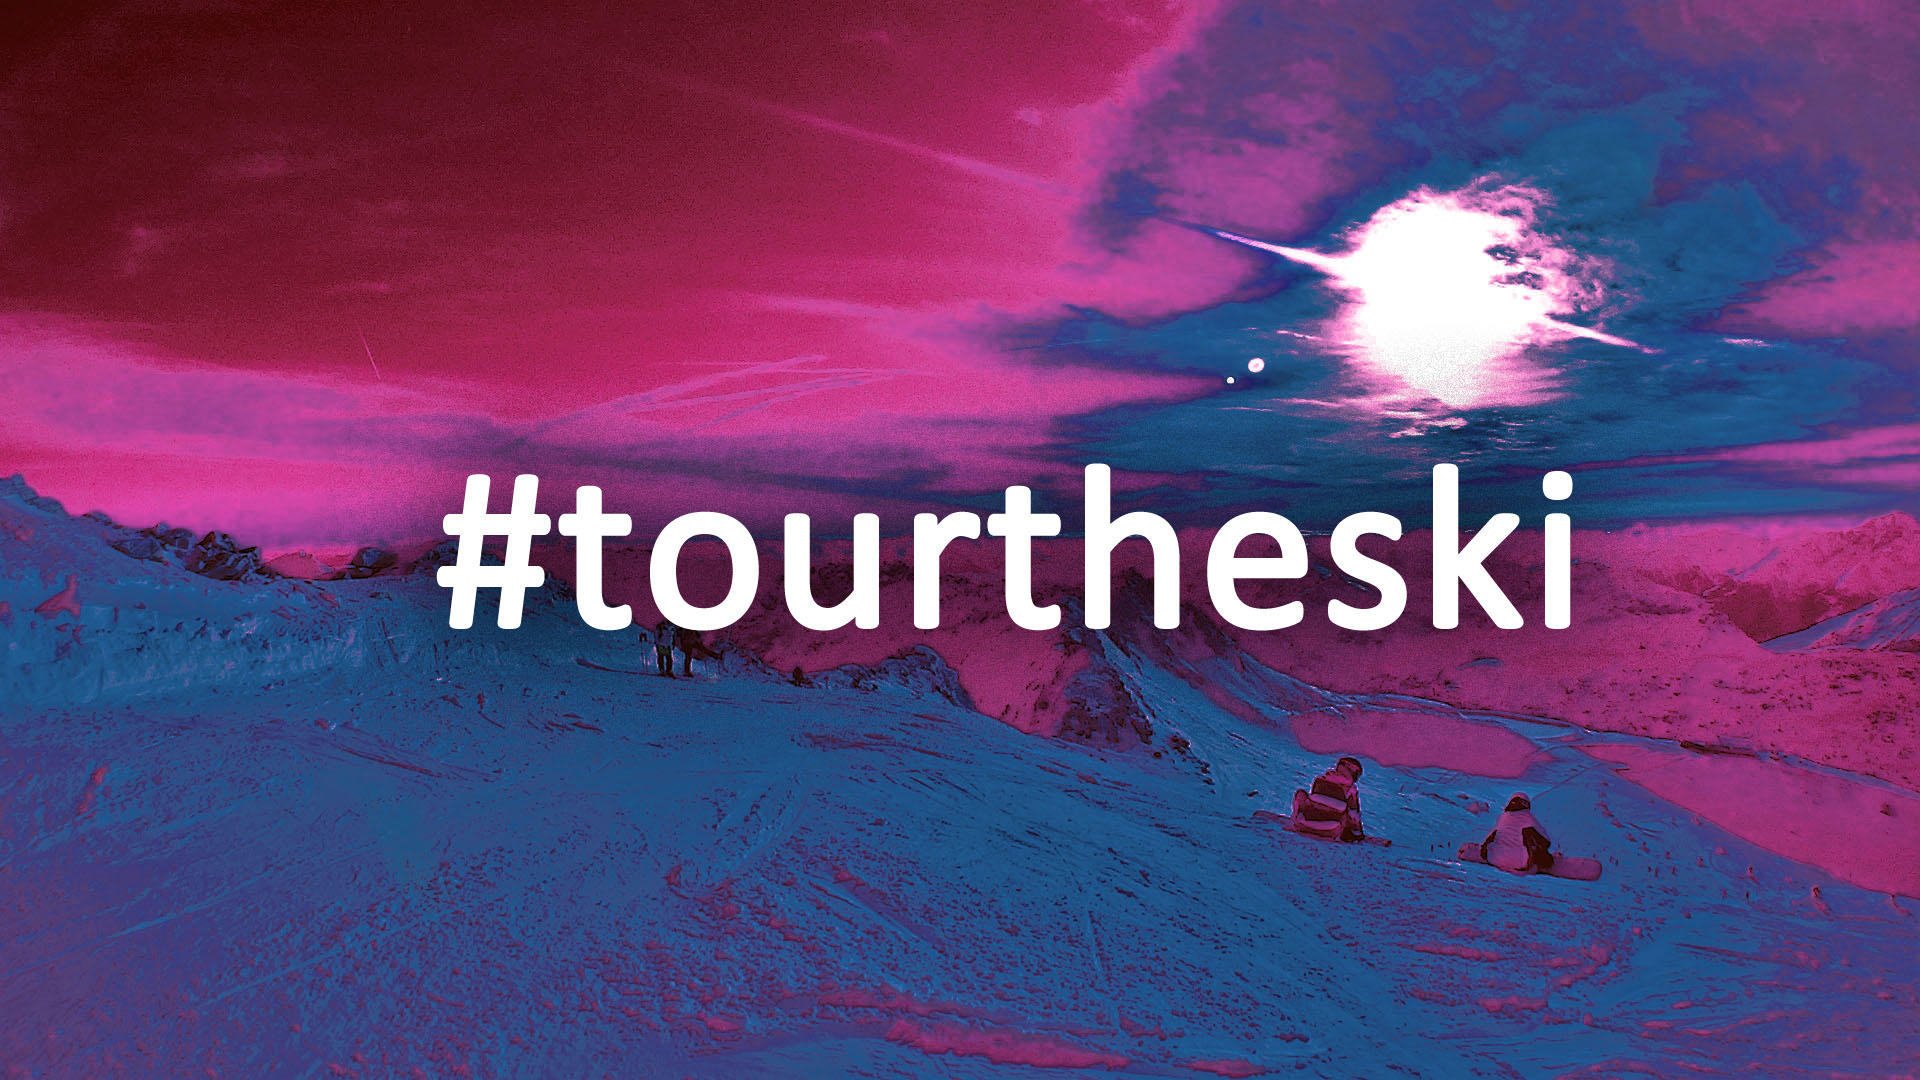 tourtheski-hashtag